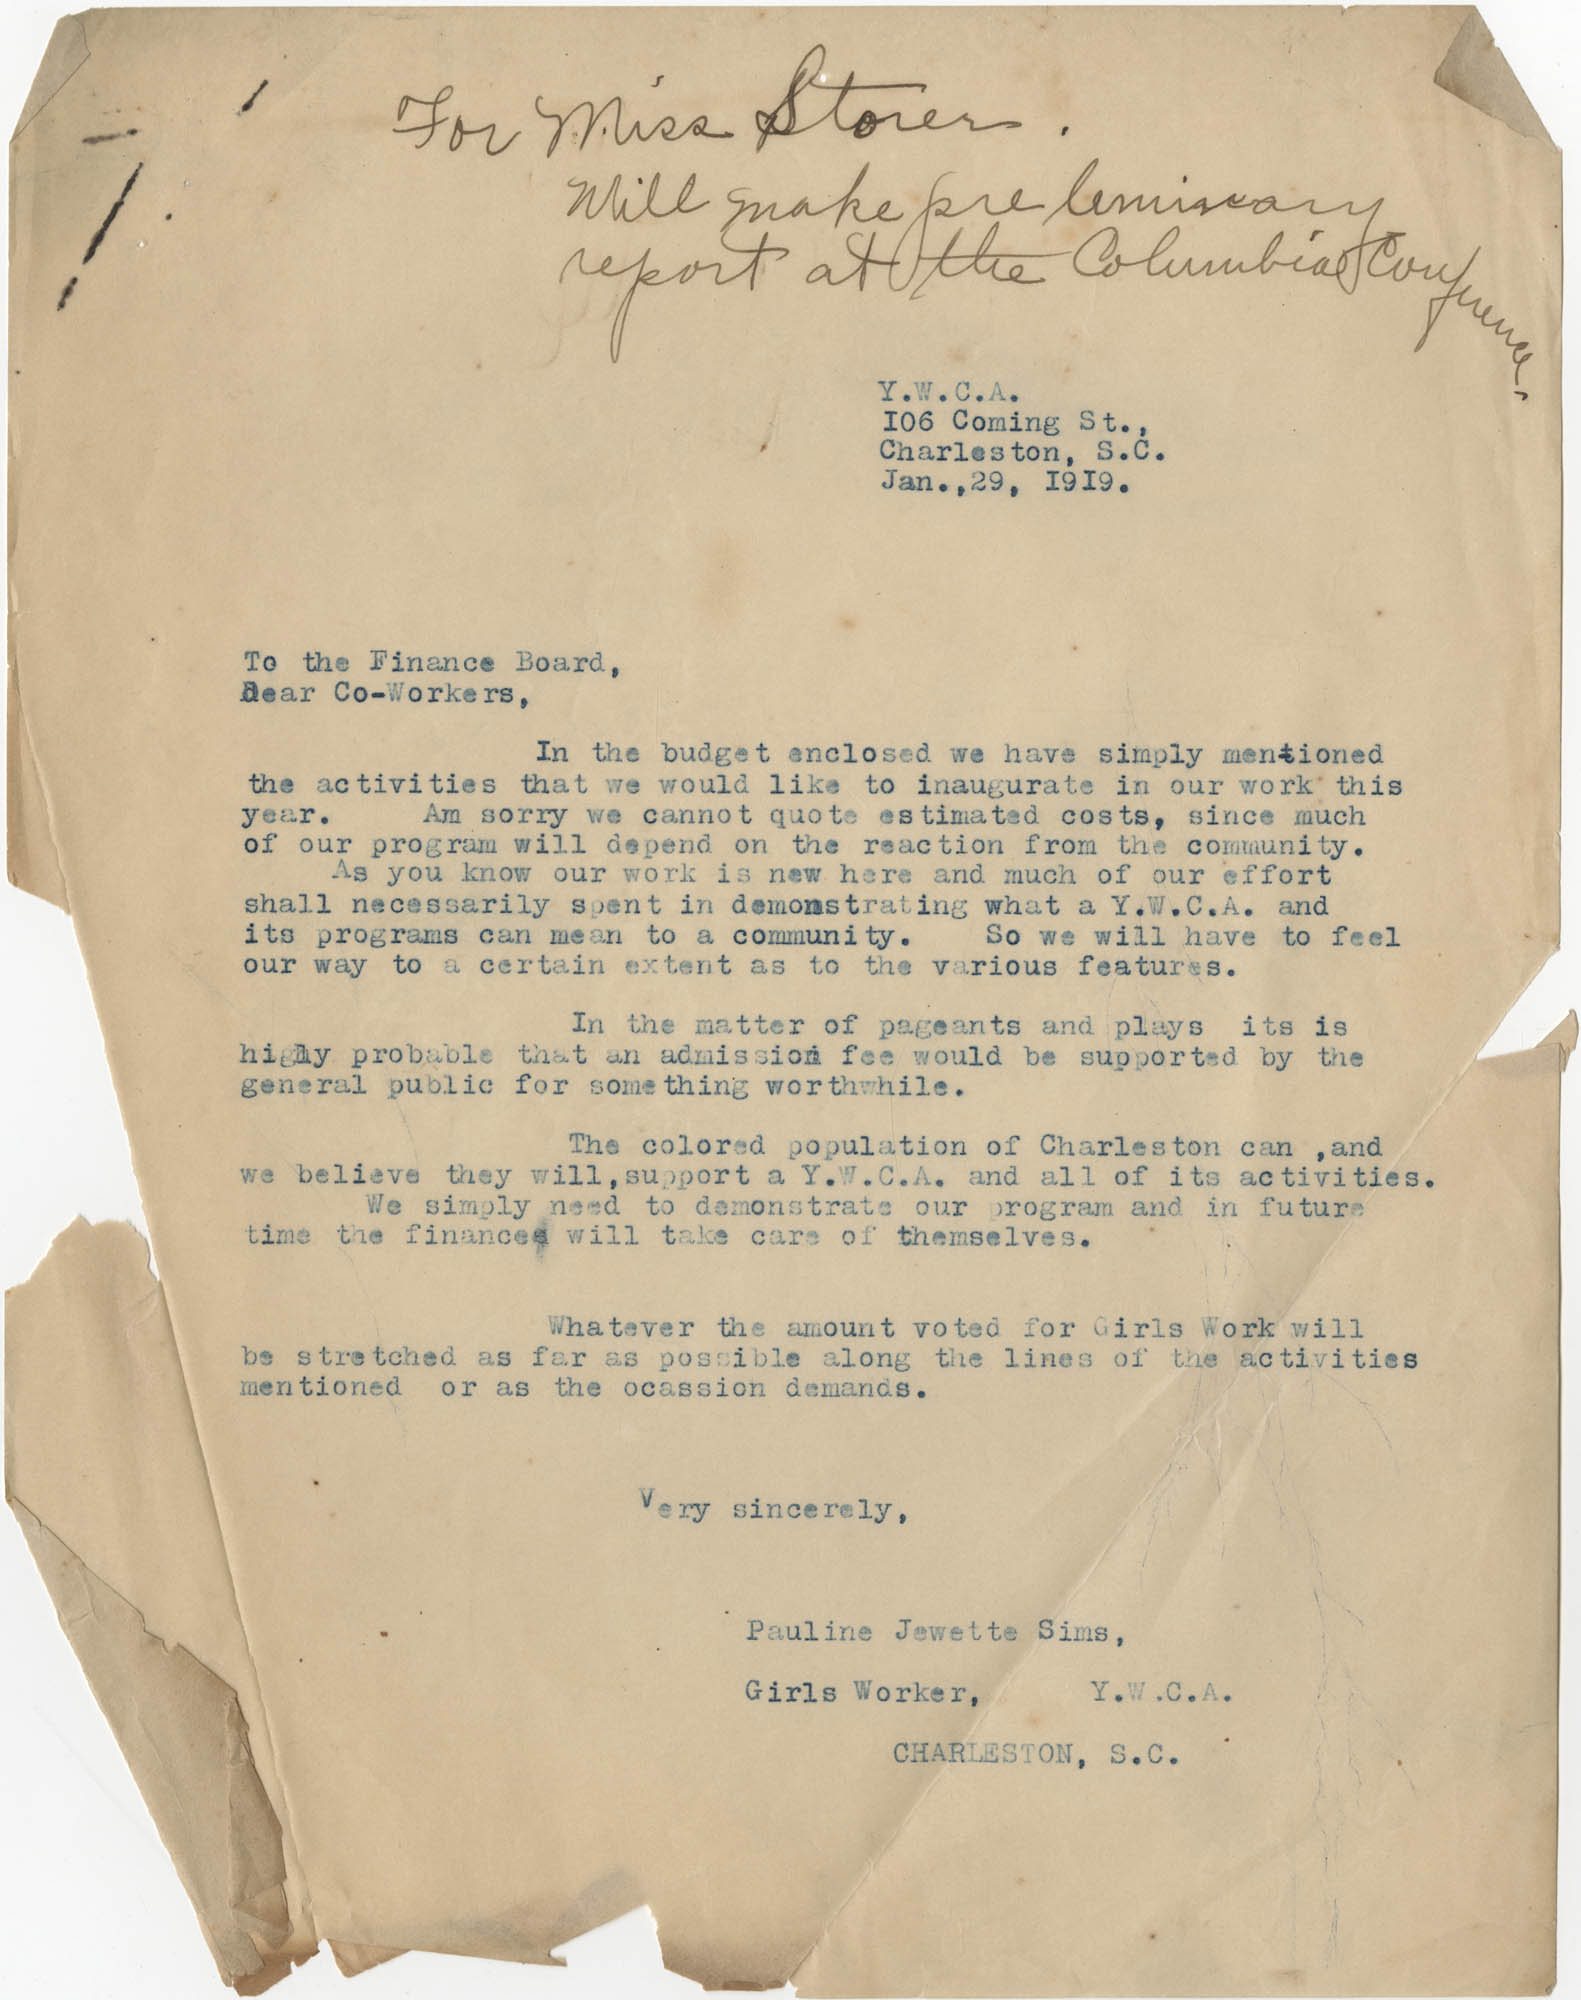 Letter from Pauline Jewette Sims to Finance Board and Co-Workers for the Y.W.C.A., January 29, 1919